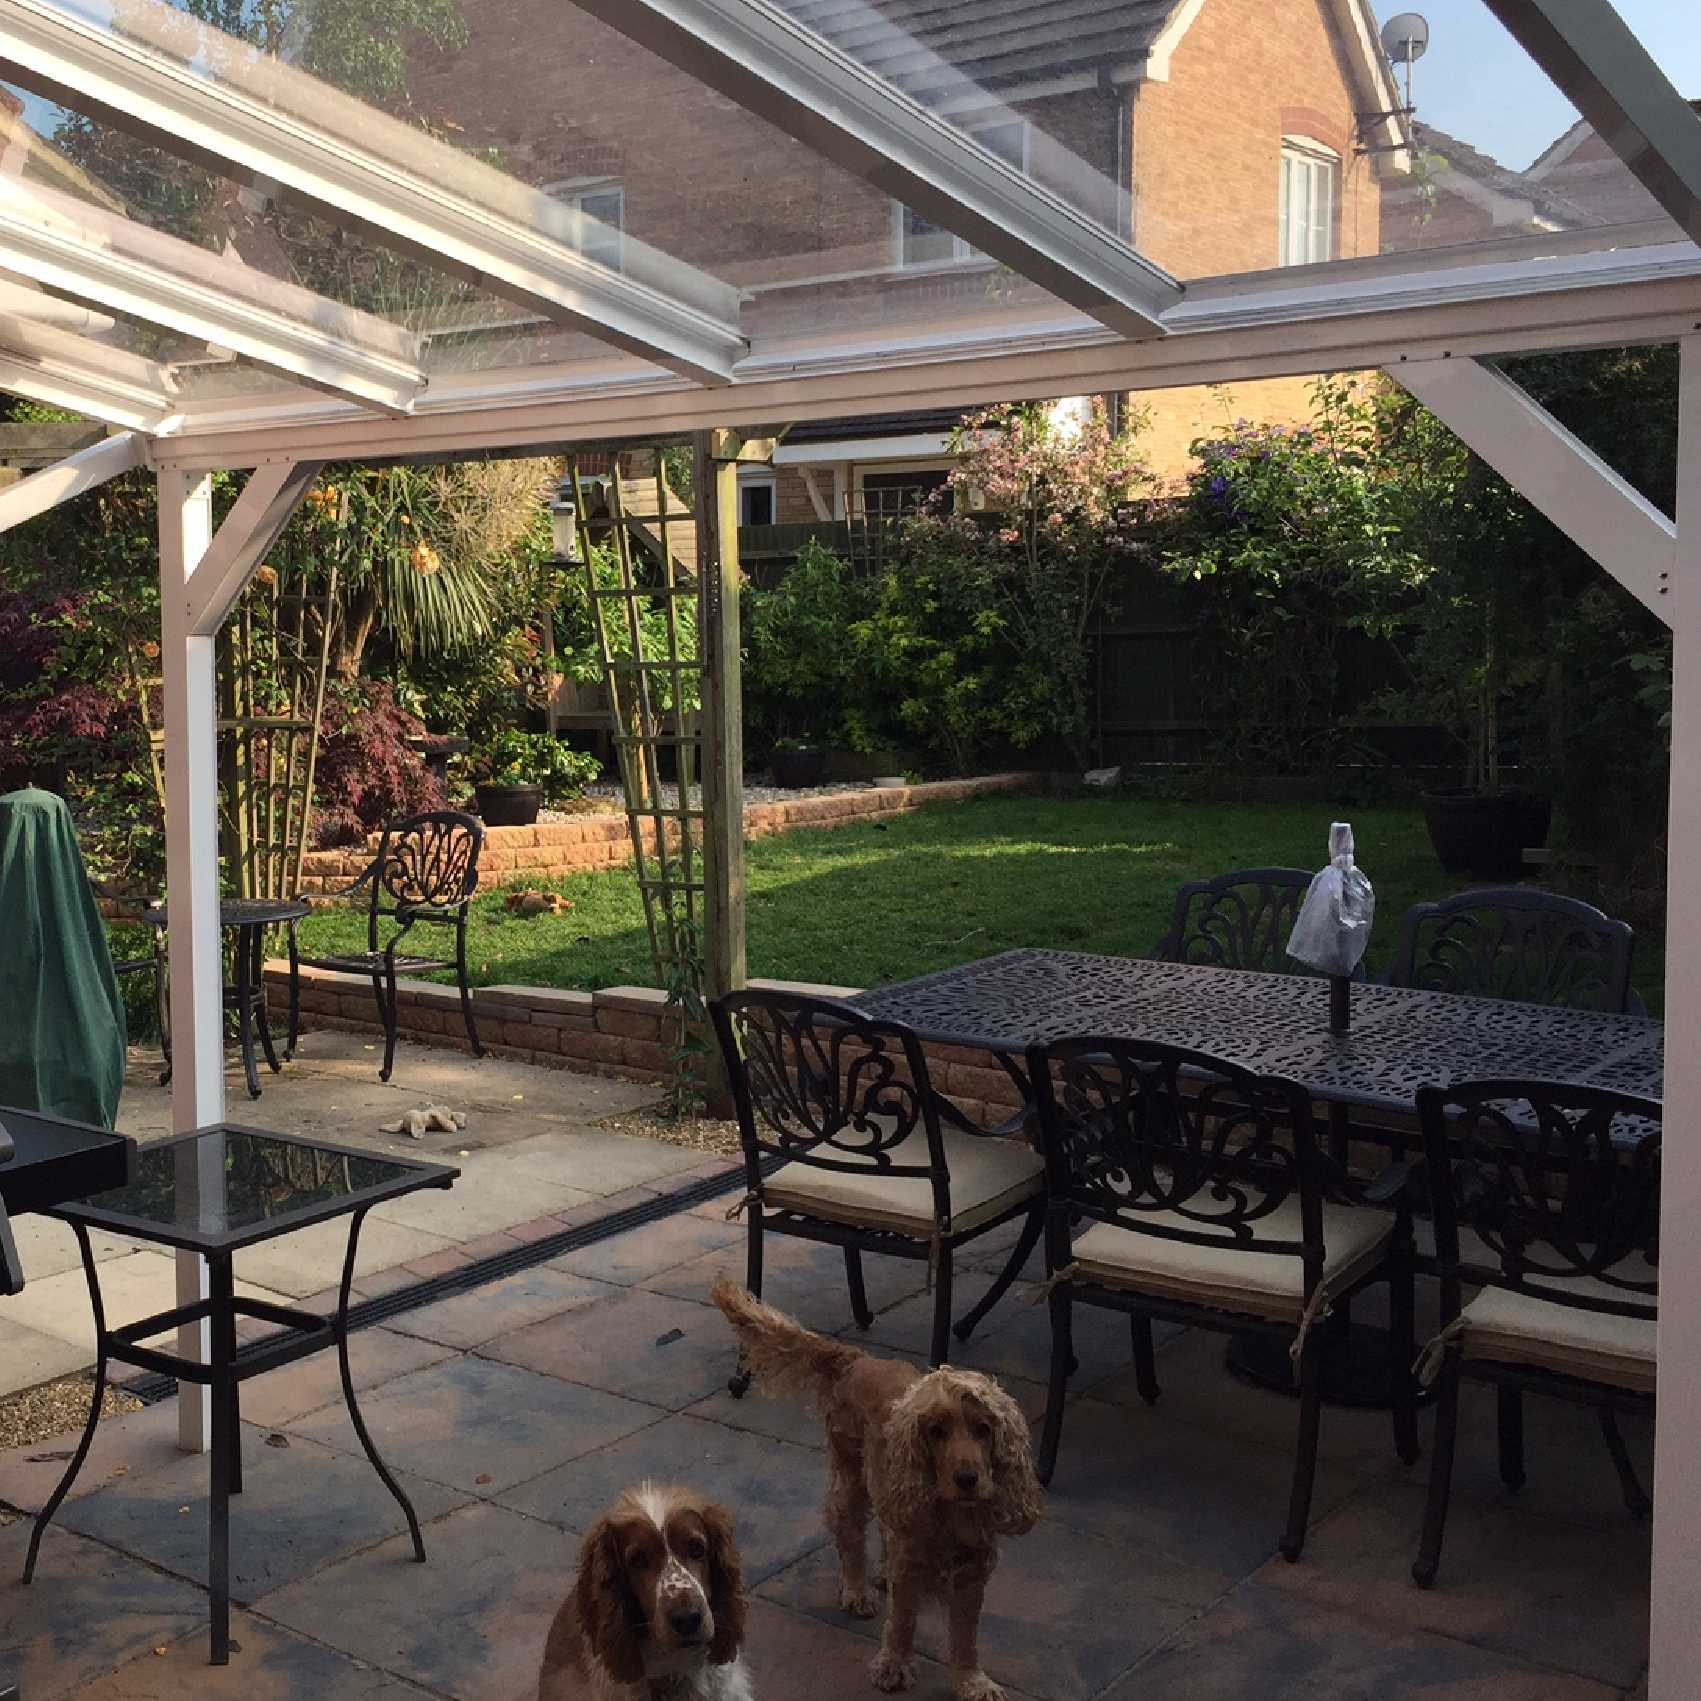 Affordable Omega Smart White Lean-To Canopy UNGLAZED for 6mm Glazing - 9.1m (W) x 2.0m (P), (5) Supporting Posts